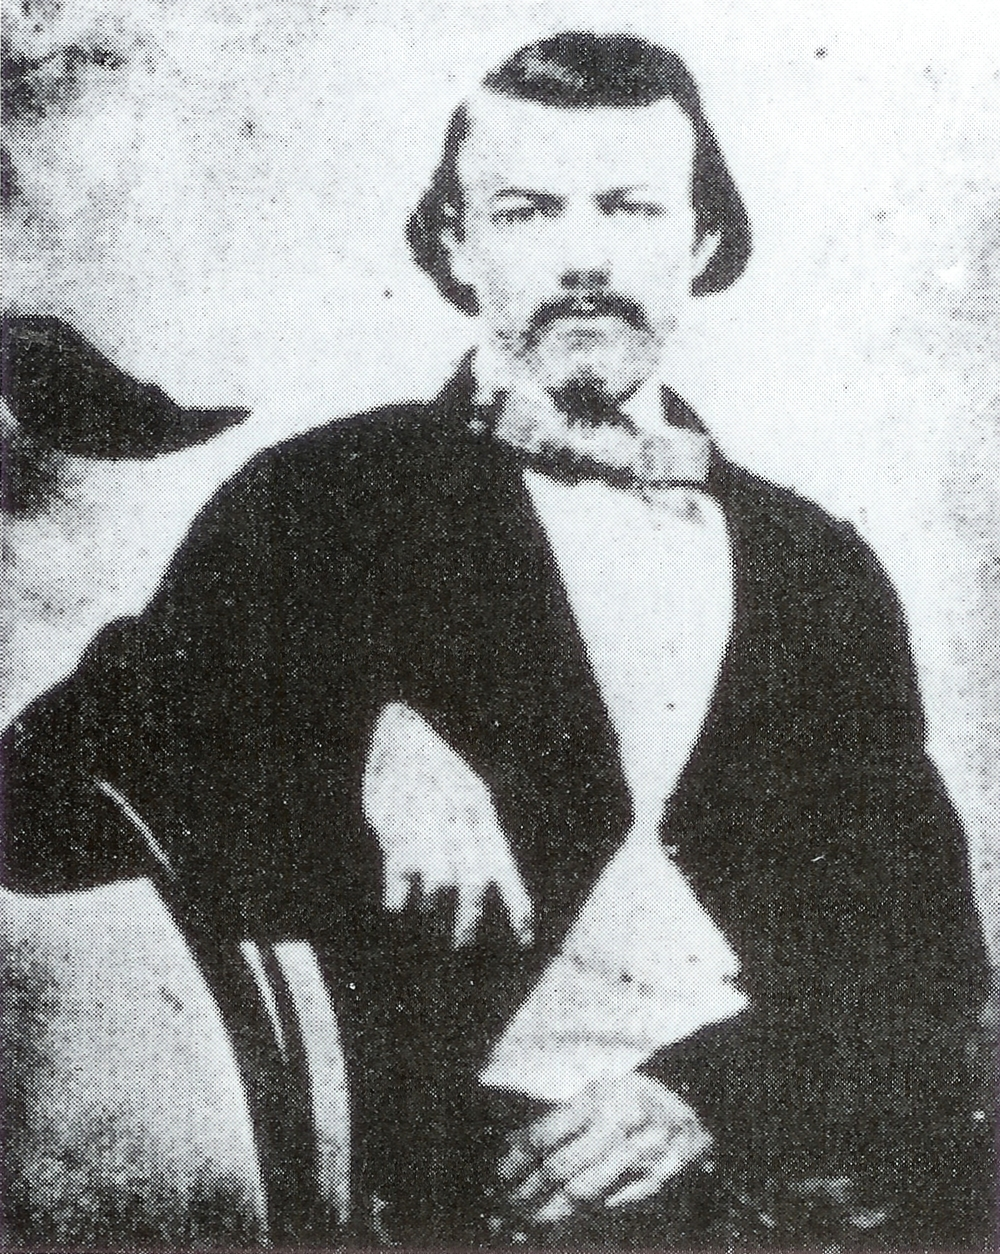 Colonel William Shy, killed at the Battle of Nashville, Dec. 16, 1864.